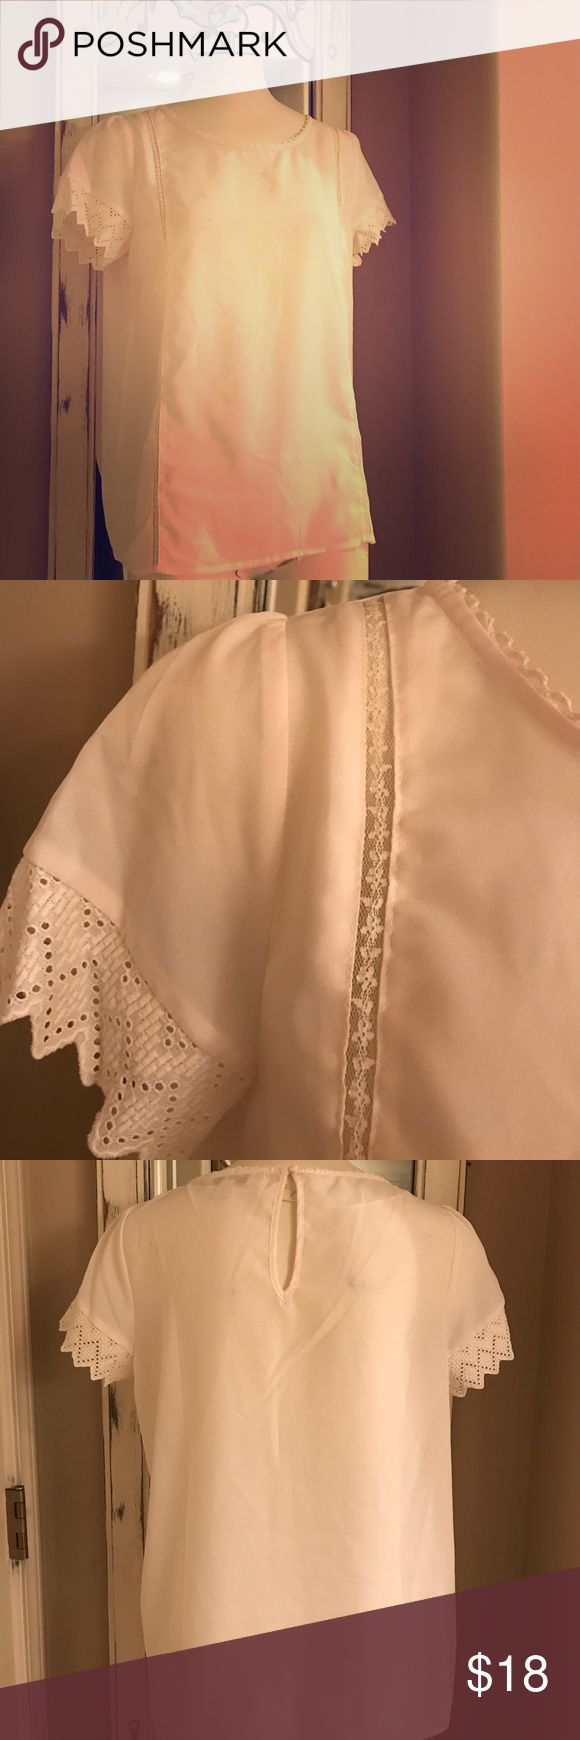 Lauren Conrad lace & sleeve top Sz:M Lauren Conrad lace detail & sleeve top Sz:M Ivory/white color. Looks to be in perfect condition. I don't see any visual flaws but unless otherwise noted all of my items are used. This seems to have never been worn & in perfect, like new condition from what is see! Gorgeous!!!  Marking as white because if it's ivory it's very light ivory but looks white to me! LC Lauren Conrad Tops Blouses